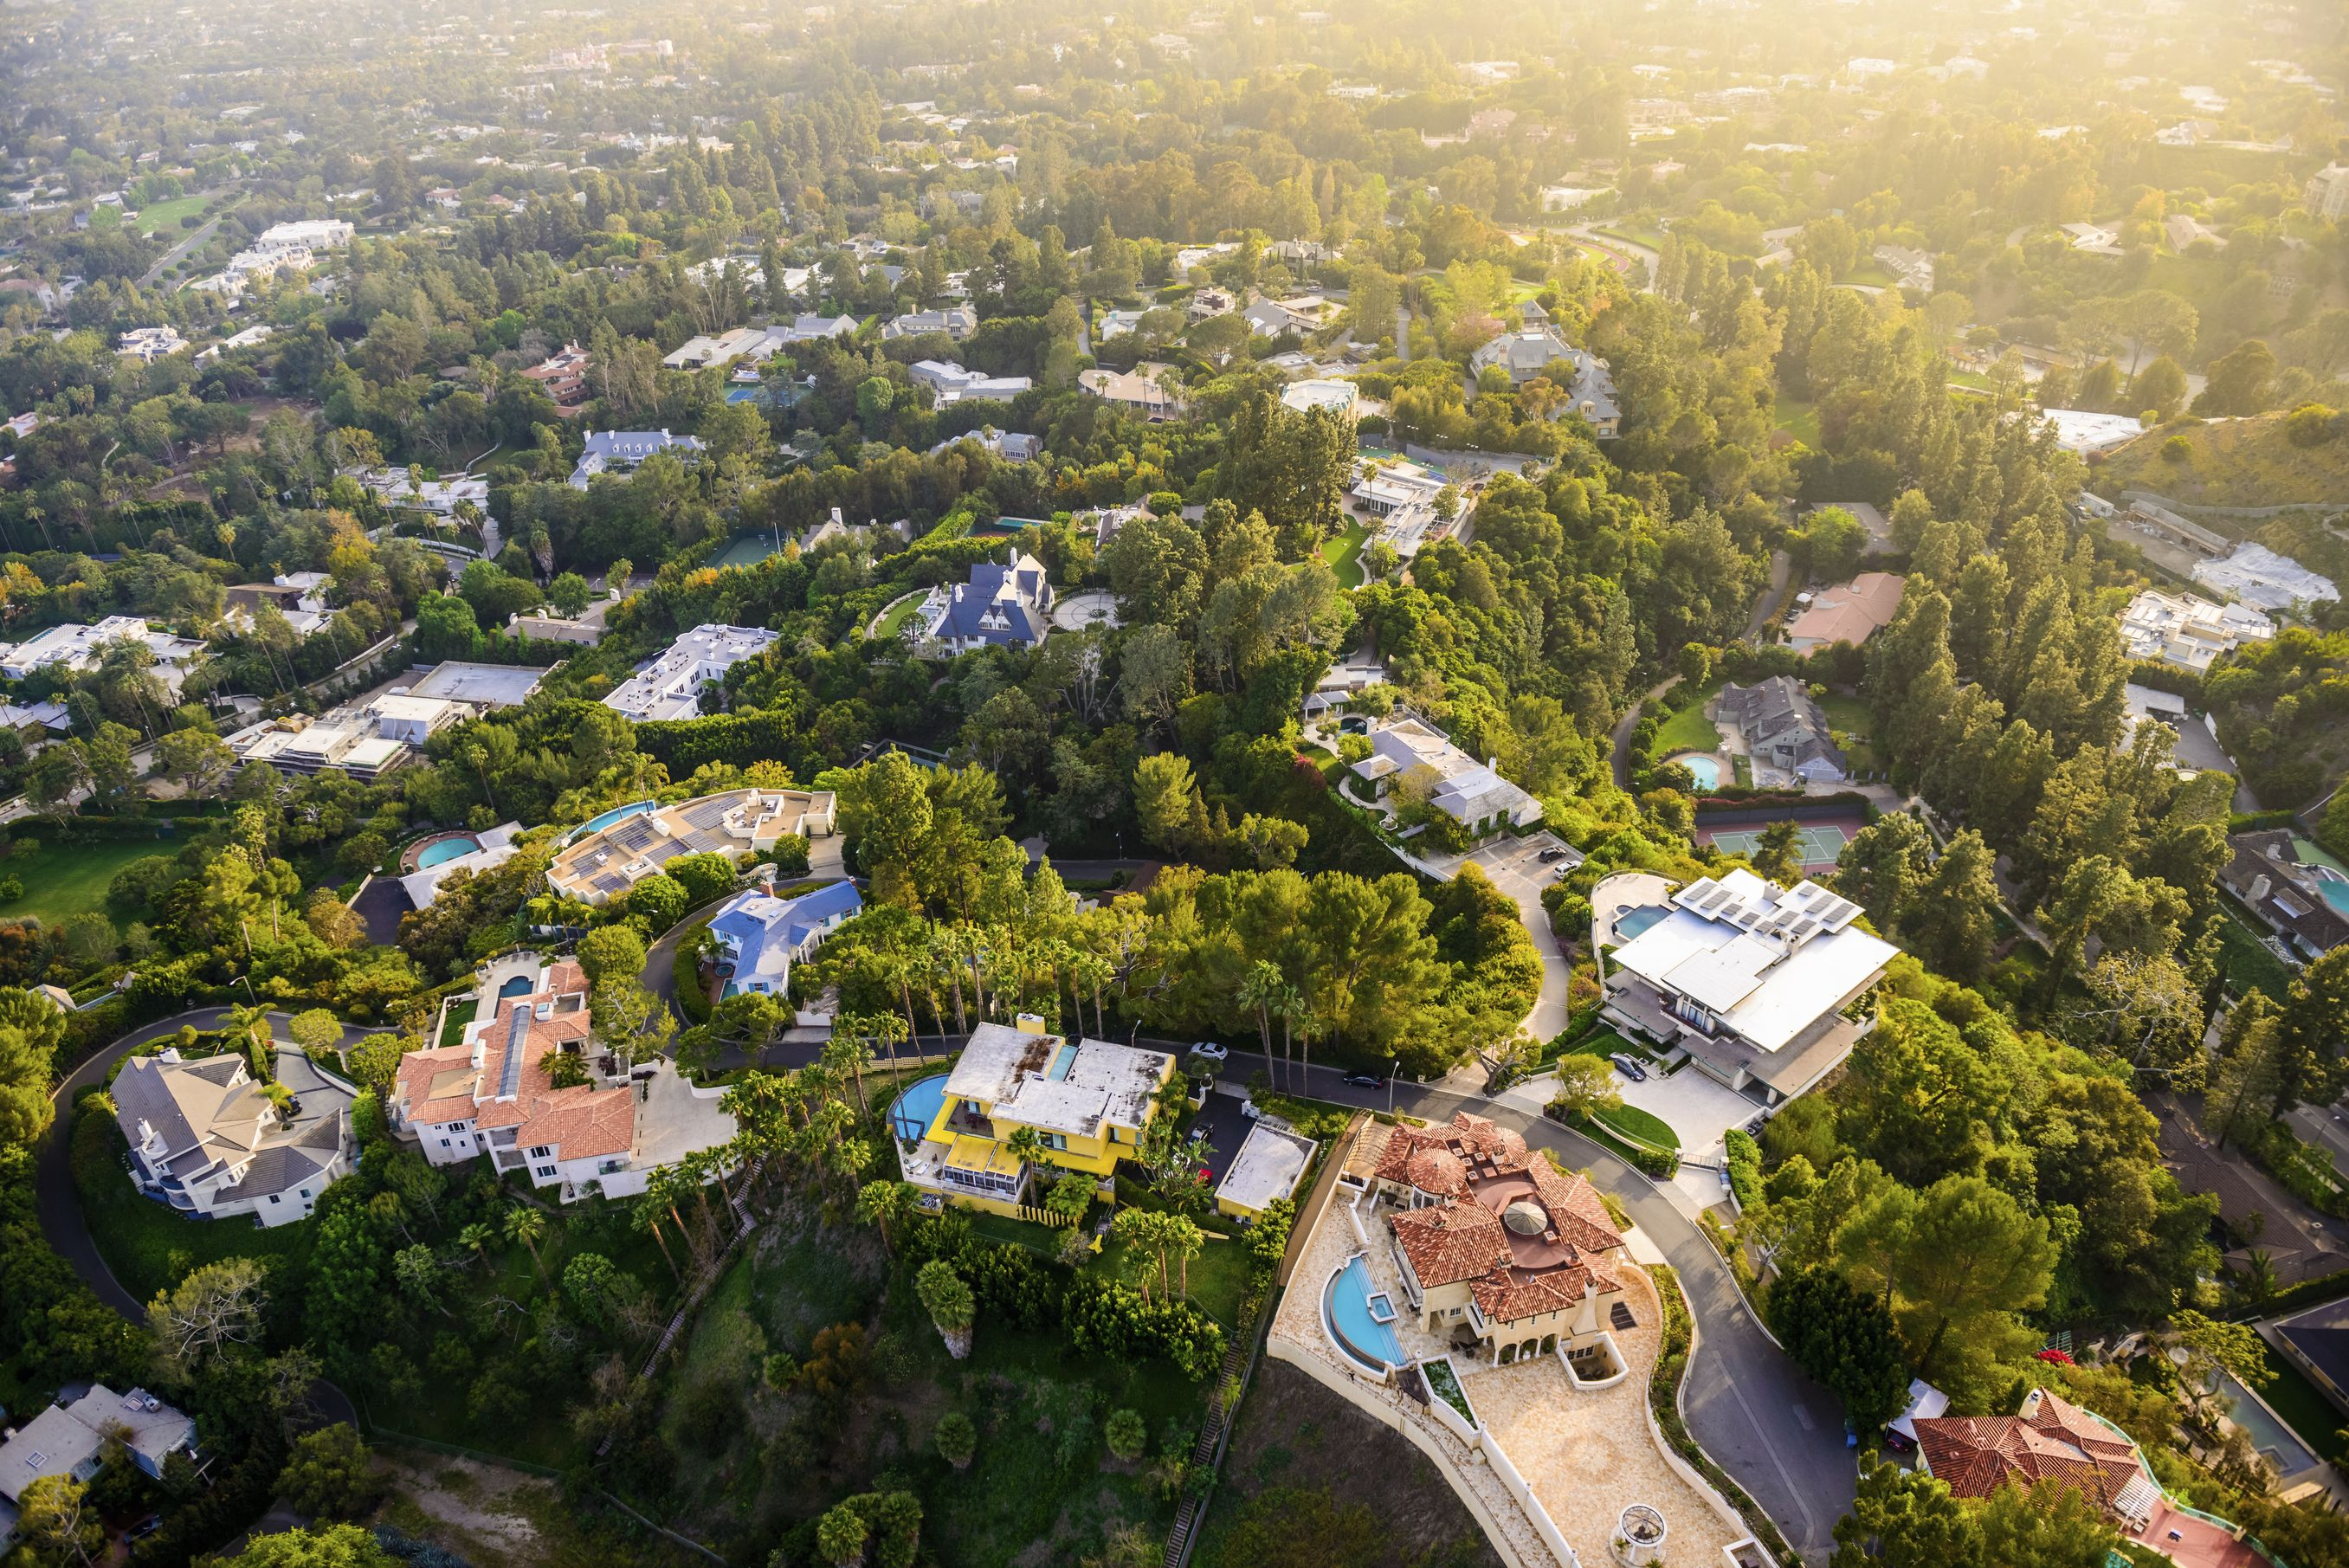 Beverly Hills mansions landscape aerial view -Los Angeles